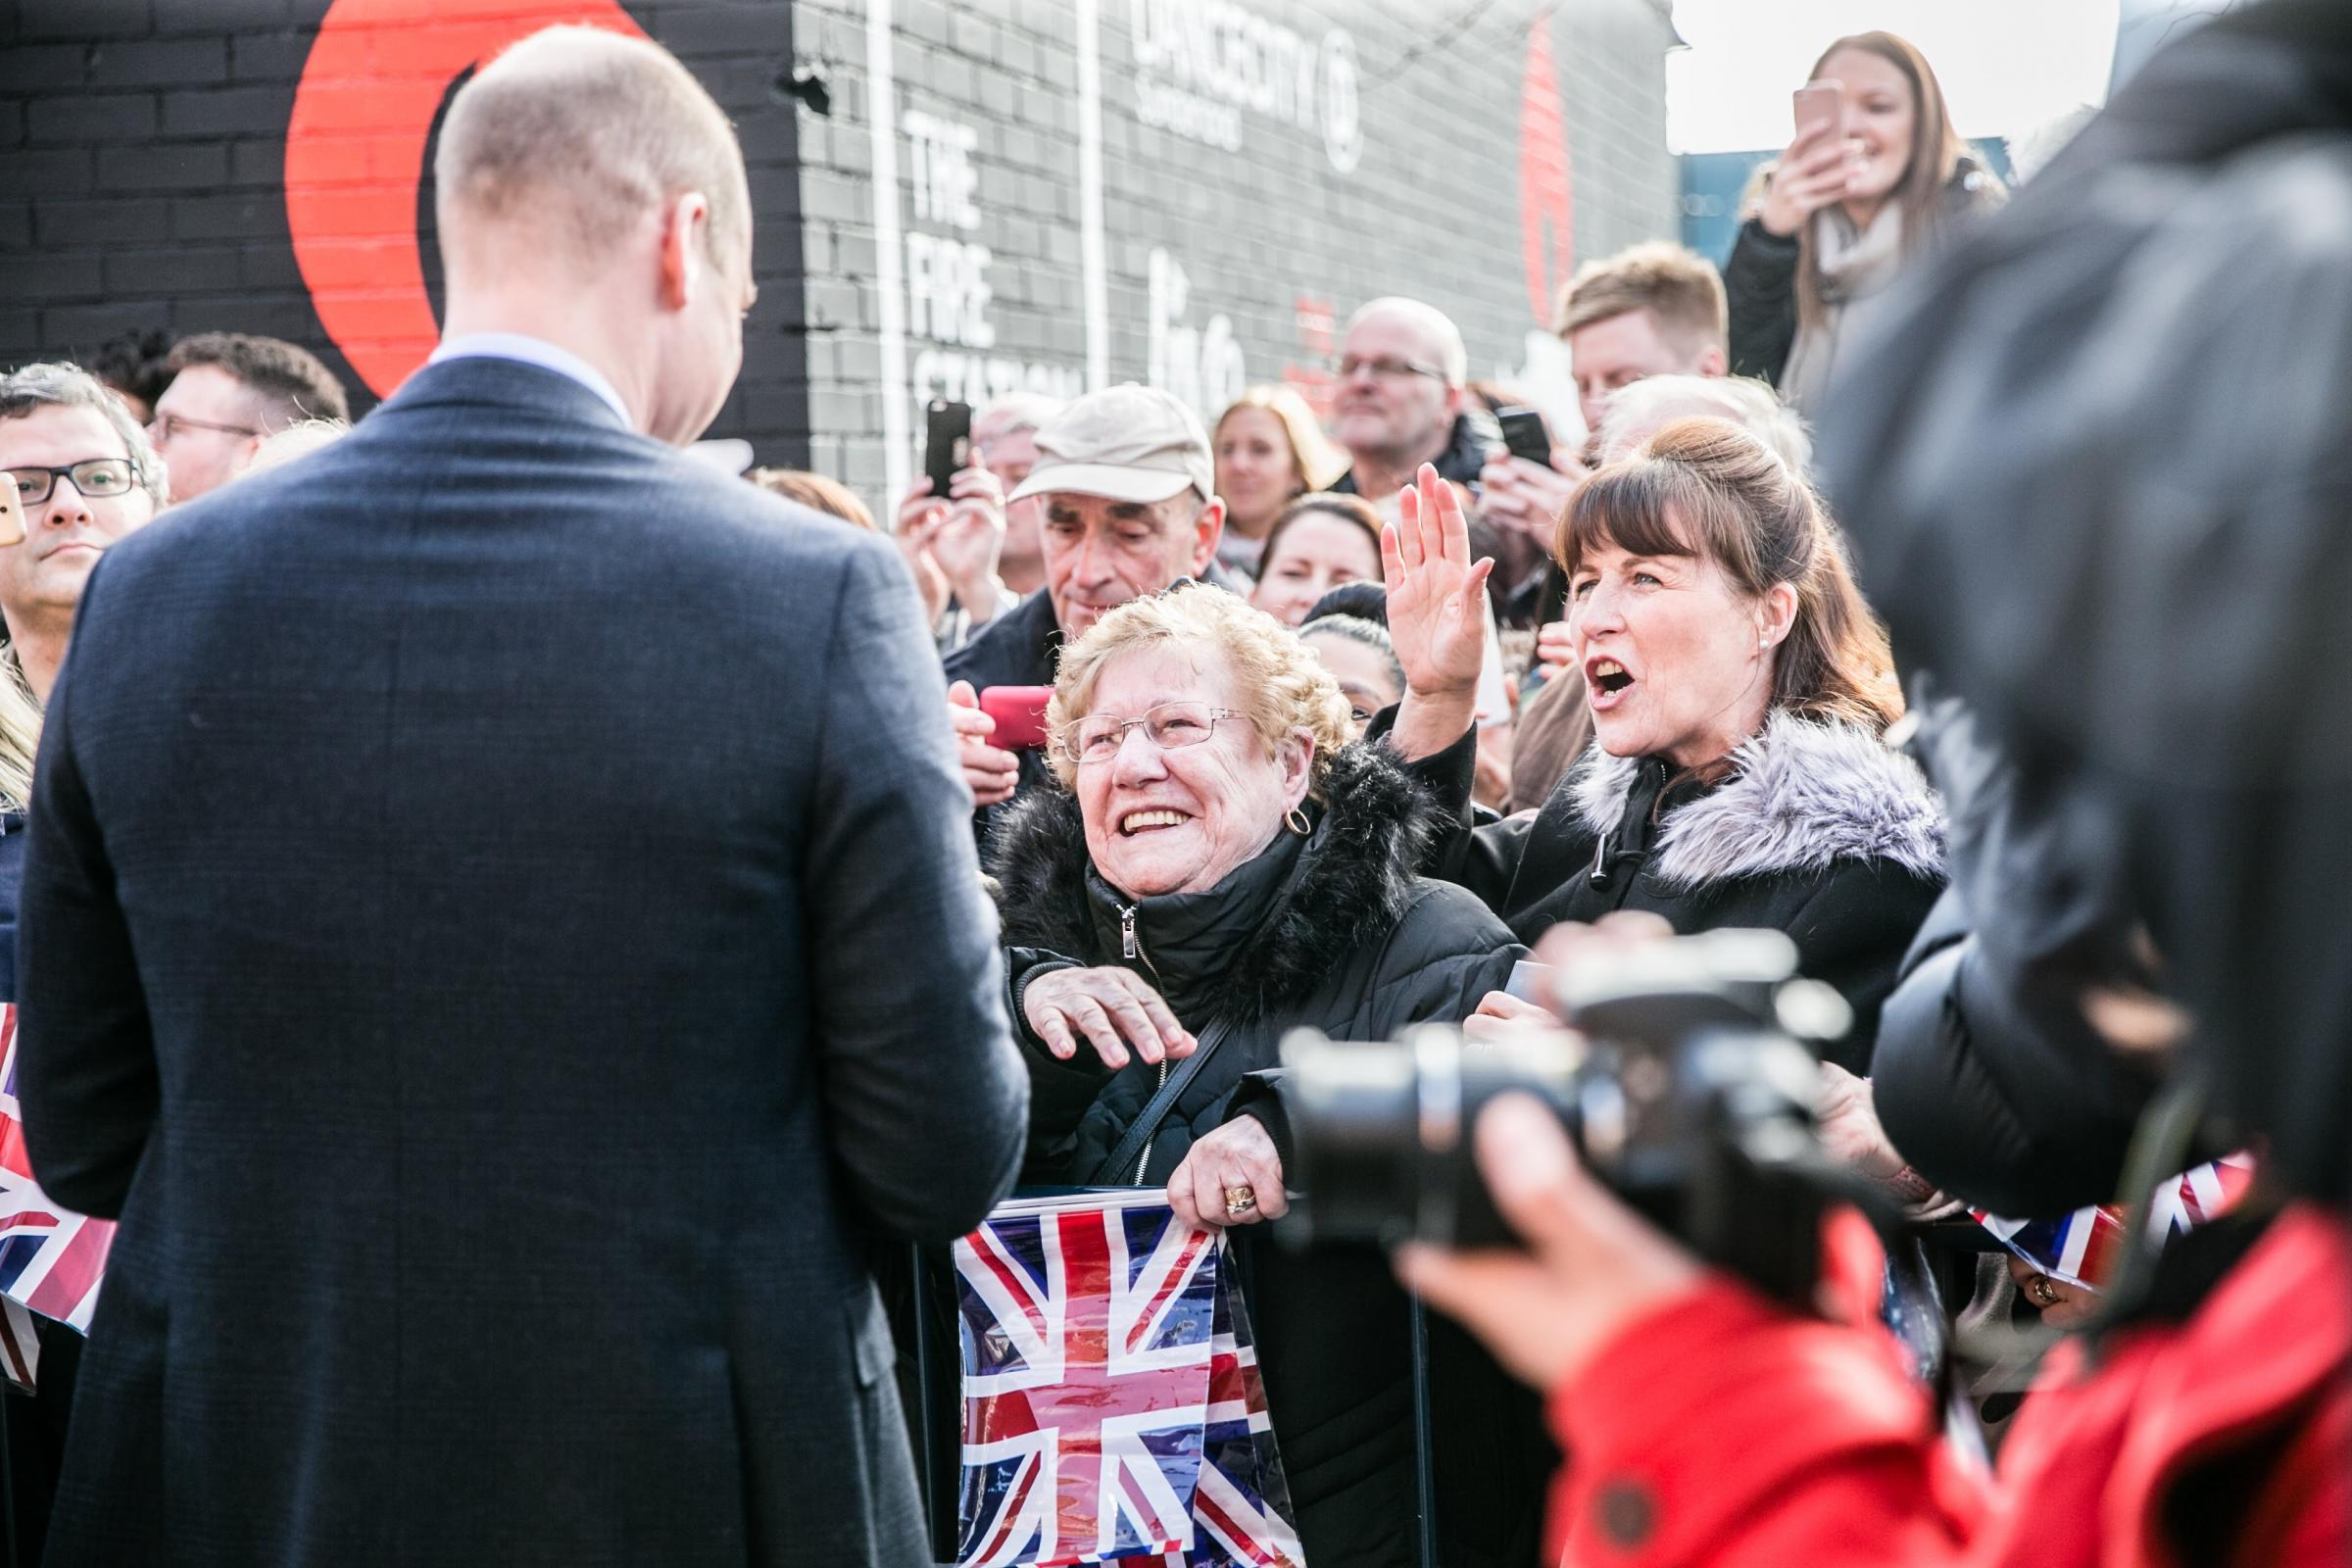 Speaking with a woman who had waited to meet the Royal couple Prince William was directed towards another spectator who told him she was a midwife. Picture: SARAH CALDECOTT